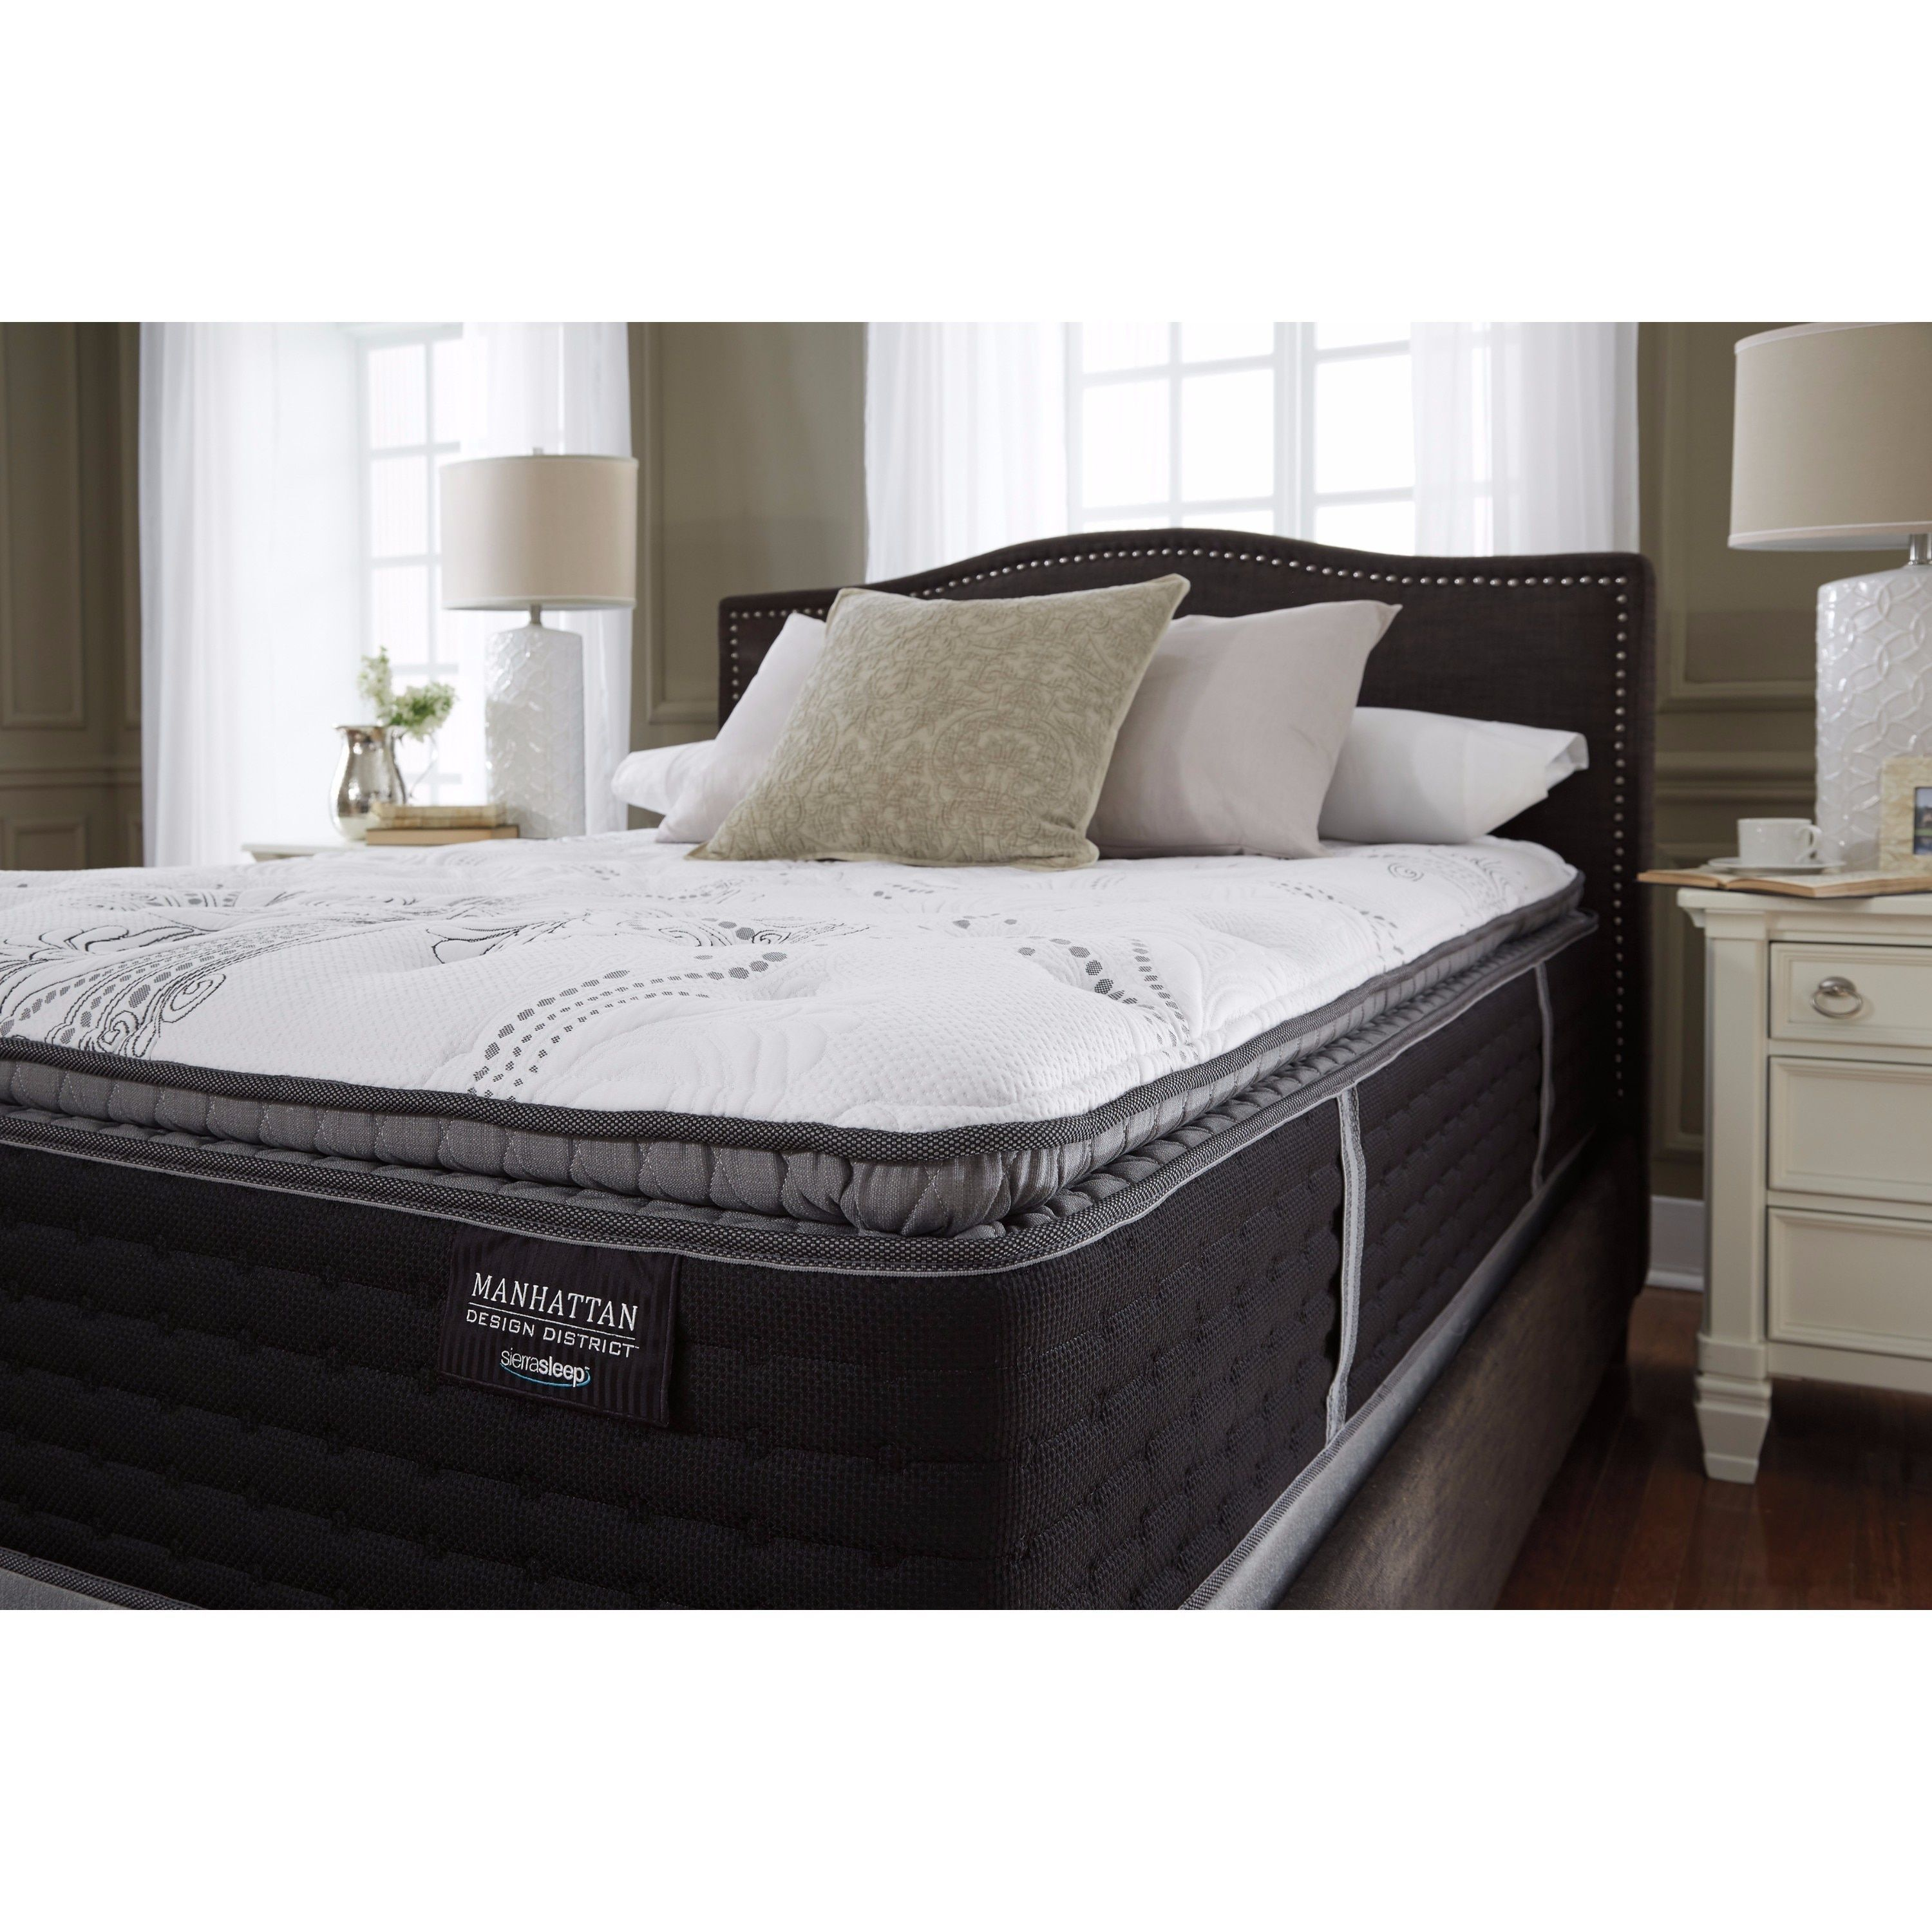 hours friday guide for mattresses mattress headboards card toddler firmness inspirations pictures queen topper bracket black images fascinating hardware firm credit headboard including child beds